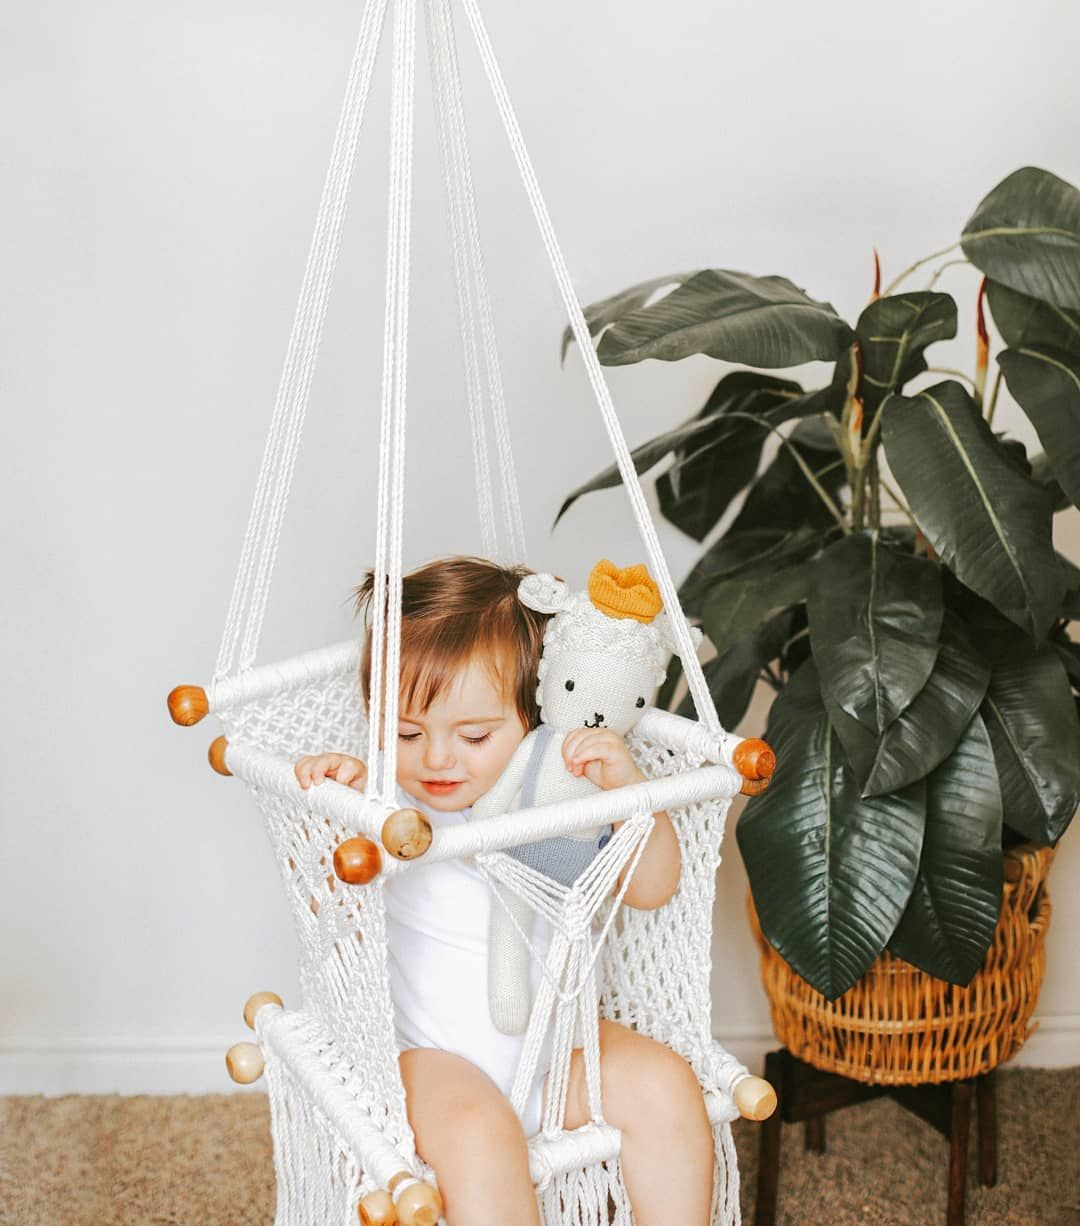 Just Swinging Life Away How Perfect Is This Macrame Swing From Adelisaandco I M In Love We Don T Have It Actu Macrame Swing Installation Swing